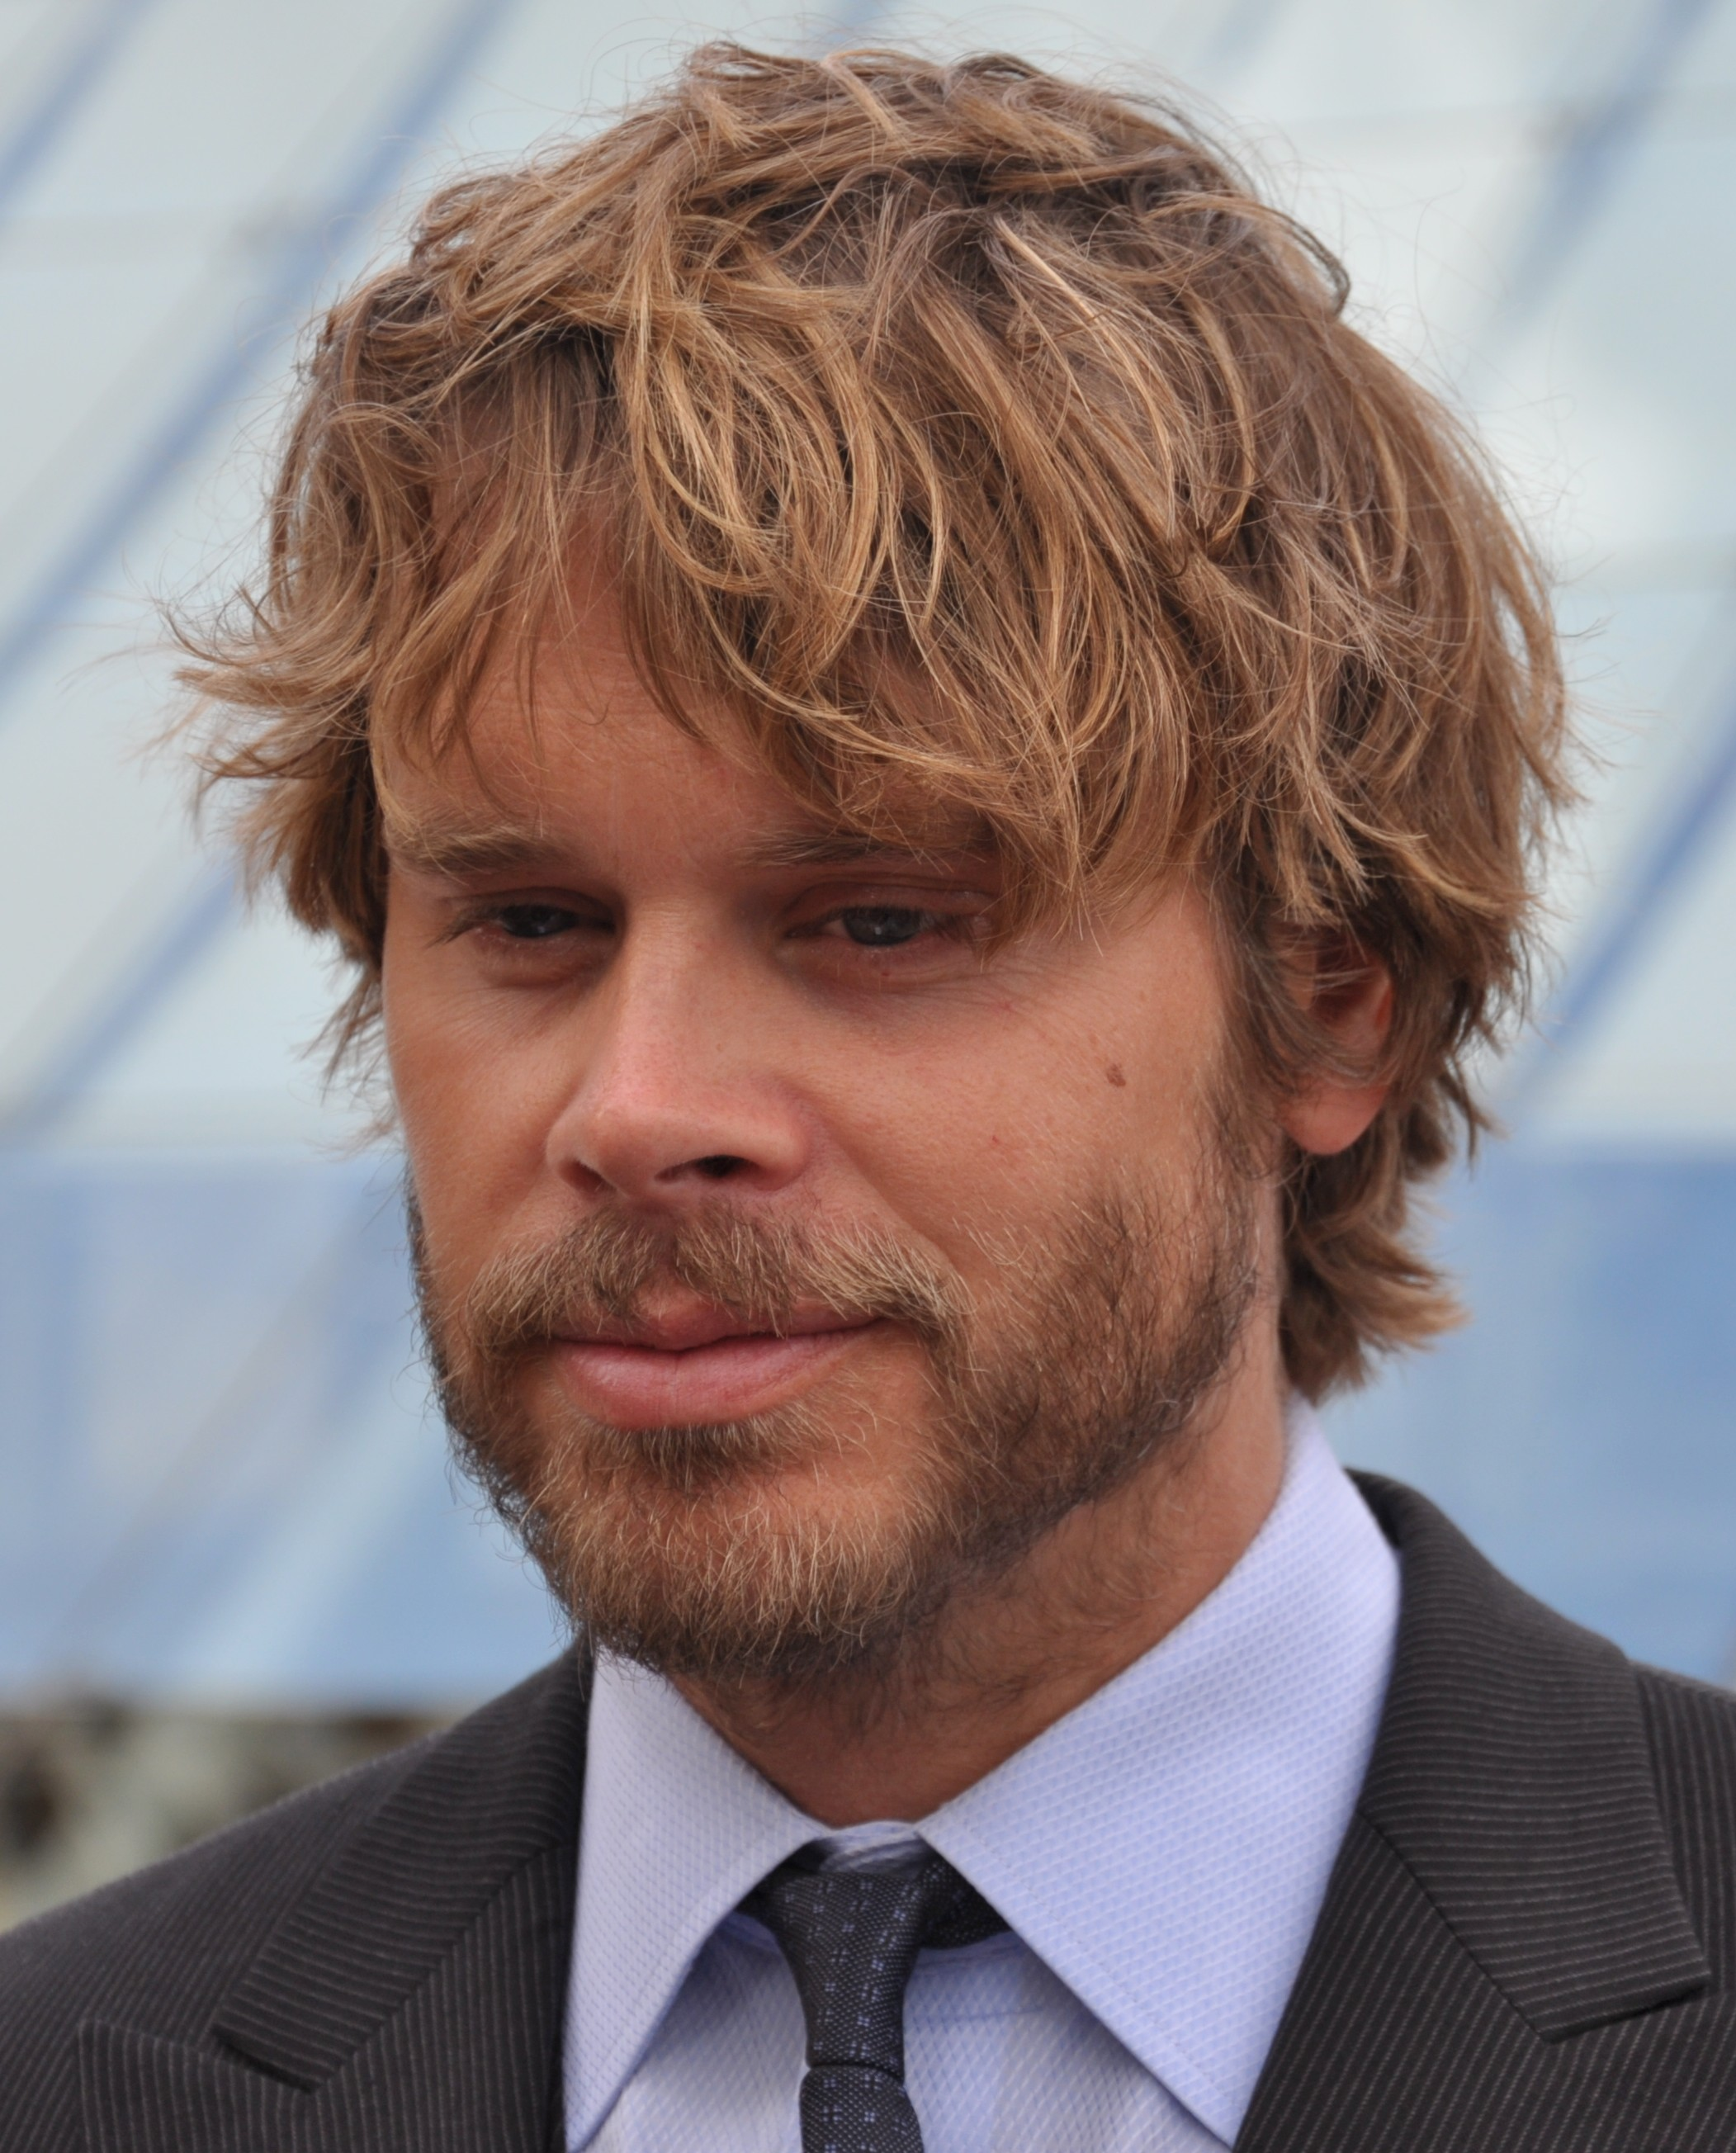 The 41-year old son of father Paul Olsen and mother Jeanne Olsen Eric Christian Olsen in 2018 photo. Eric Christian Olsen earned a  million dollar salary - leaving the net worth at 3 million in 2018